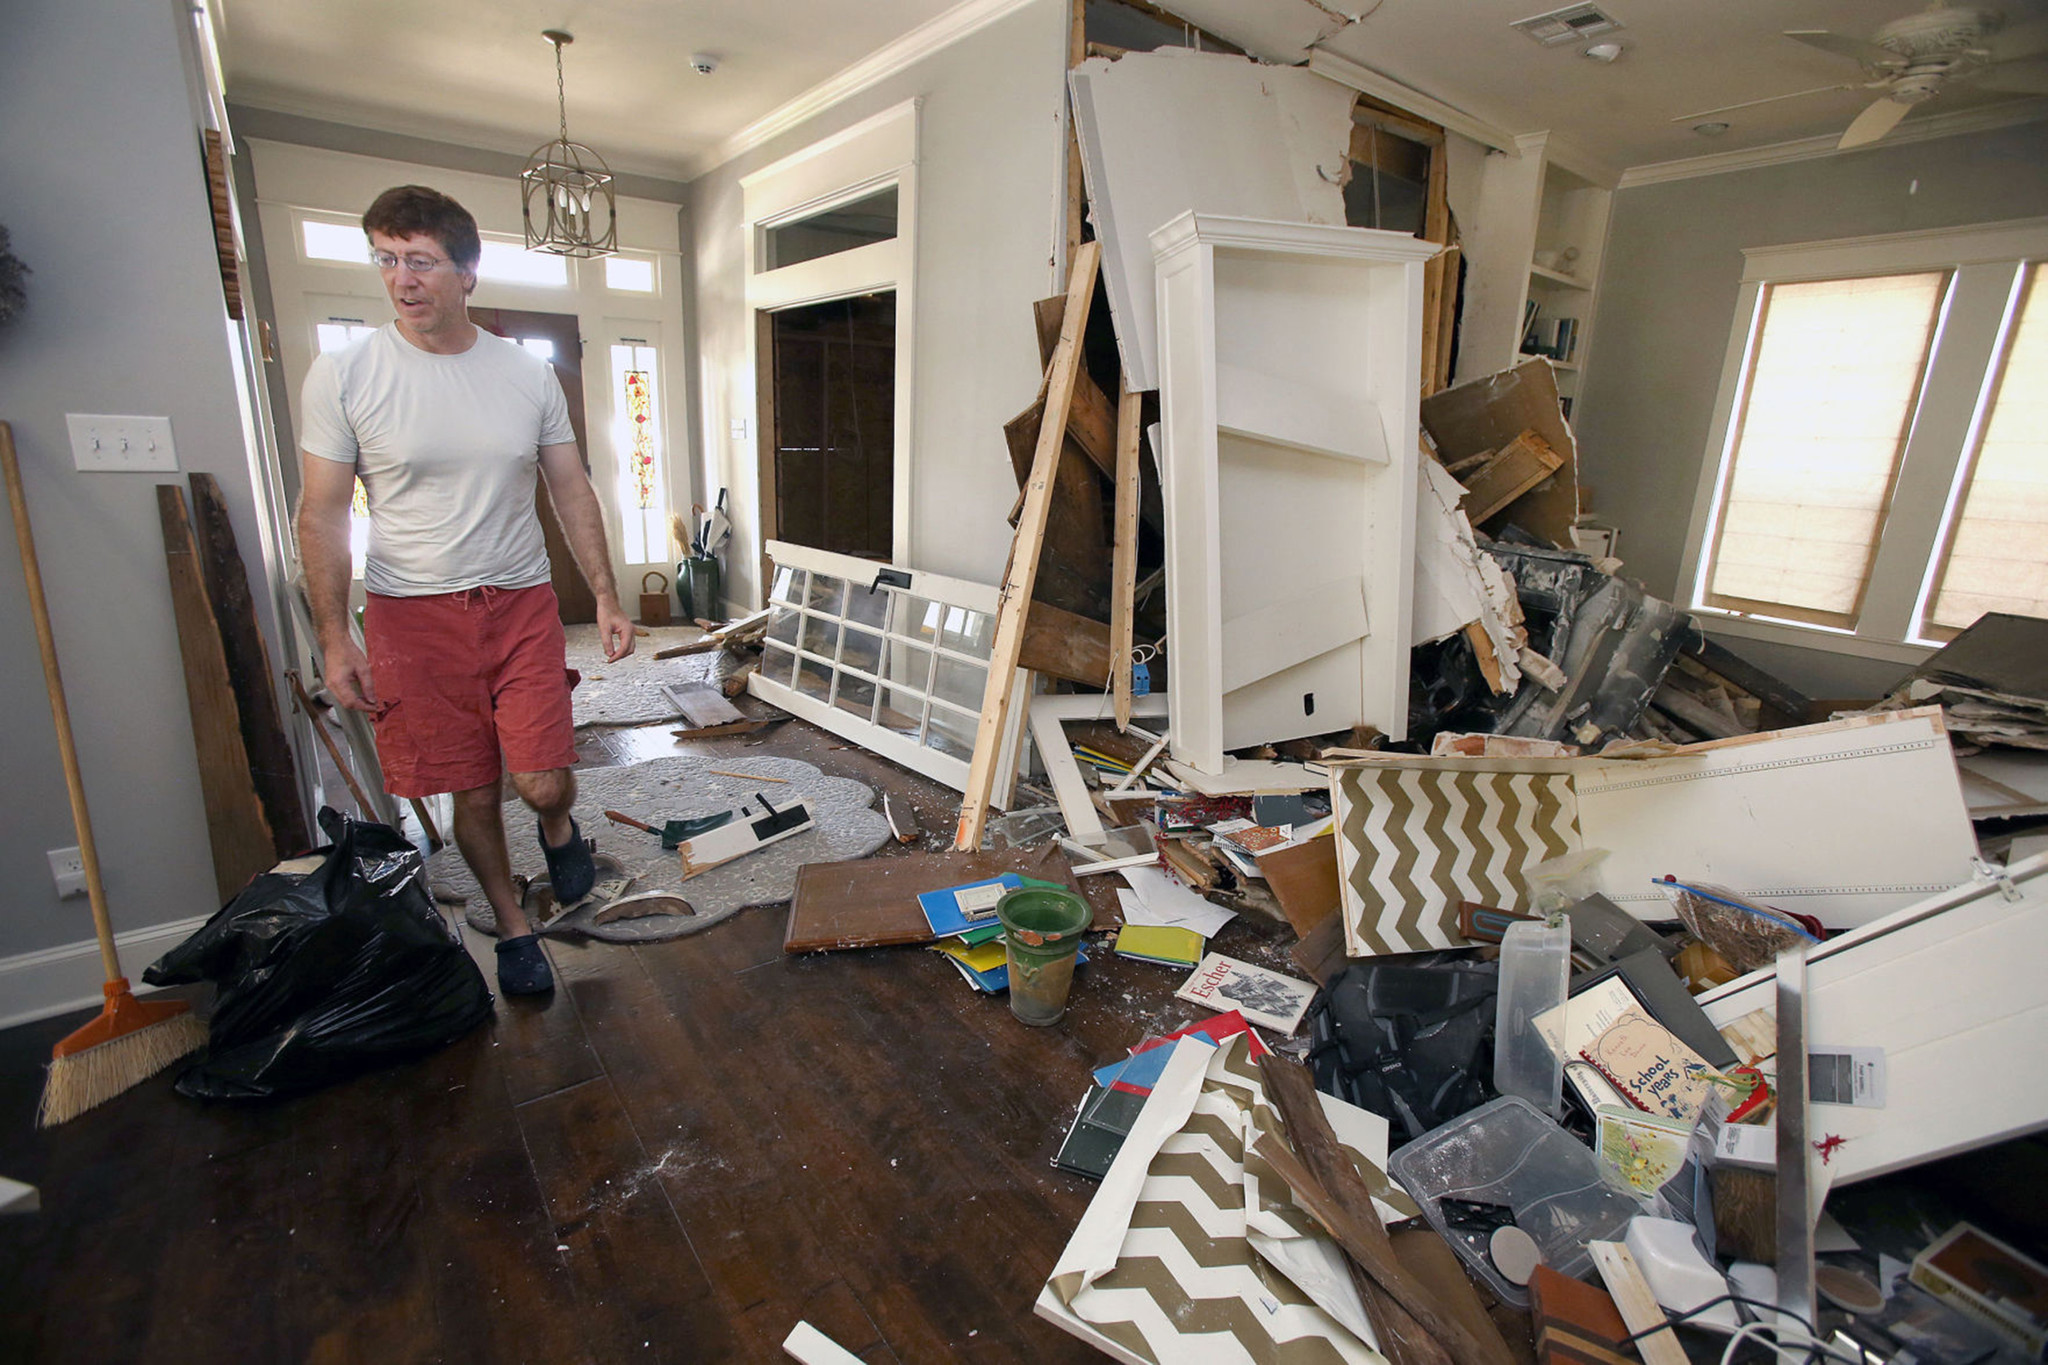 Car Crashes Into Fixer Upper House In Suspected Dwi